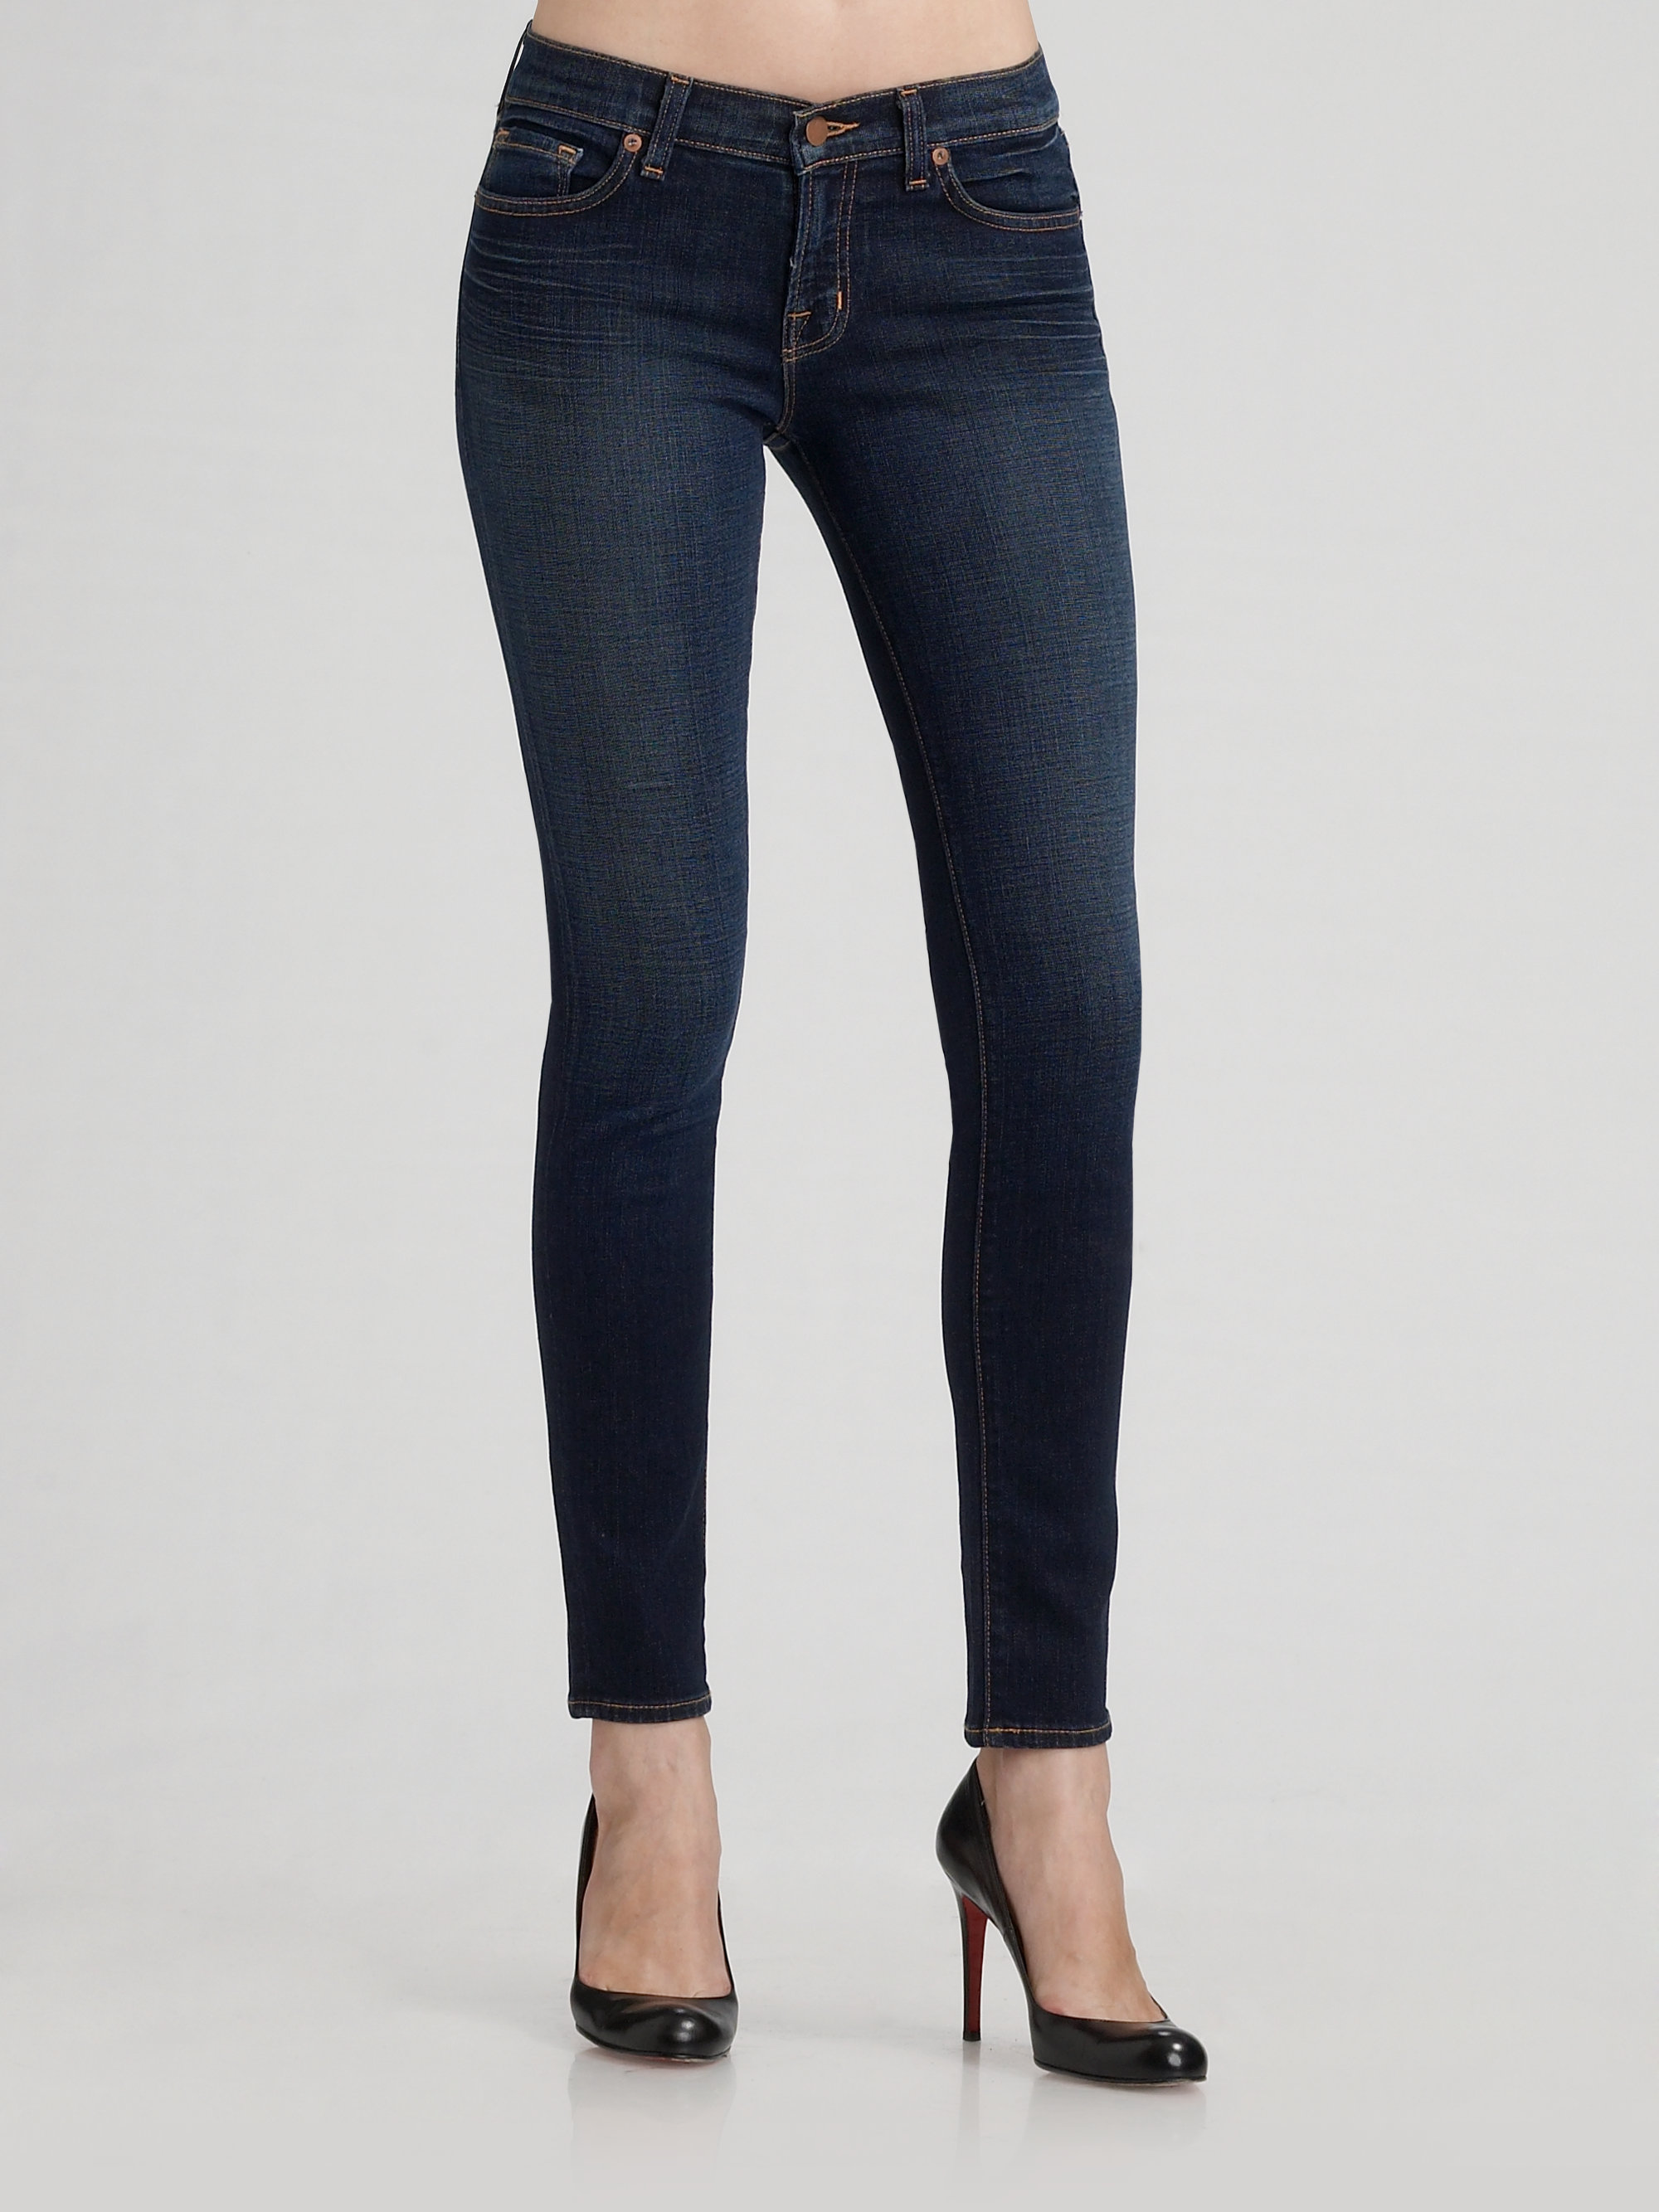 J brand 910 10 Low Rise Skinny Jeans in Blue  Lyst